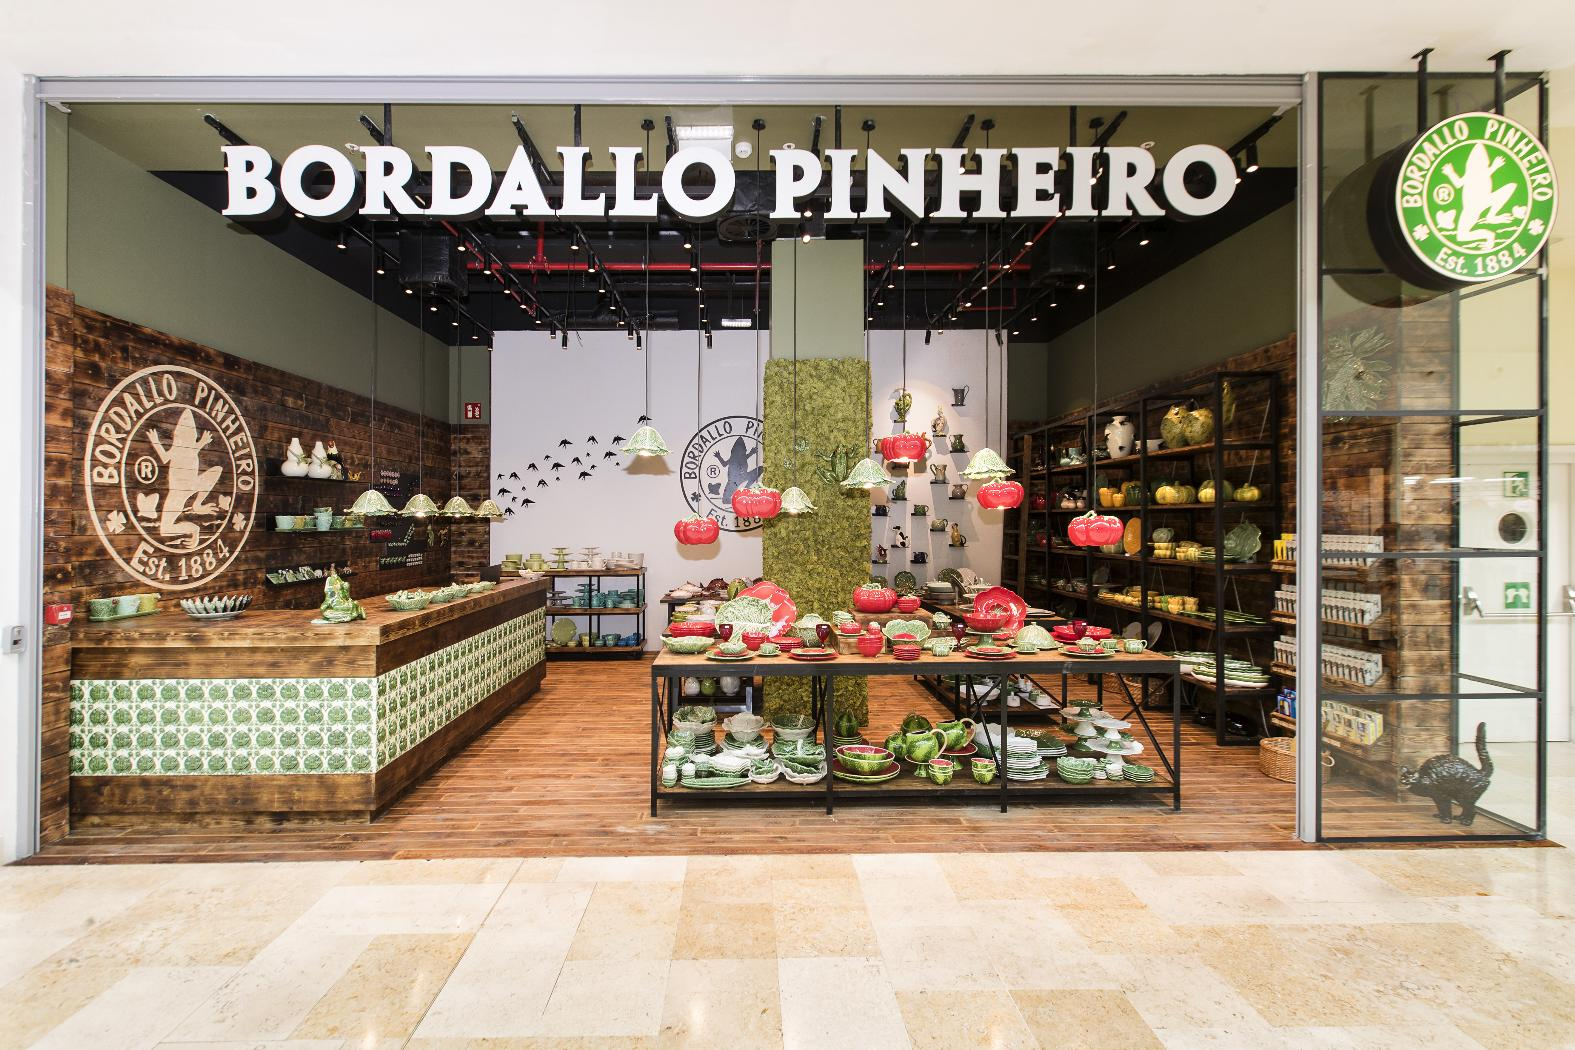 Bordallo Pinheiro opened its first store in Madrid, its first abroad